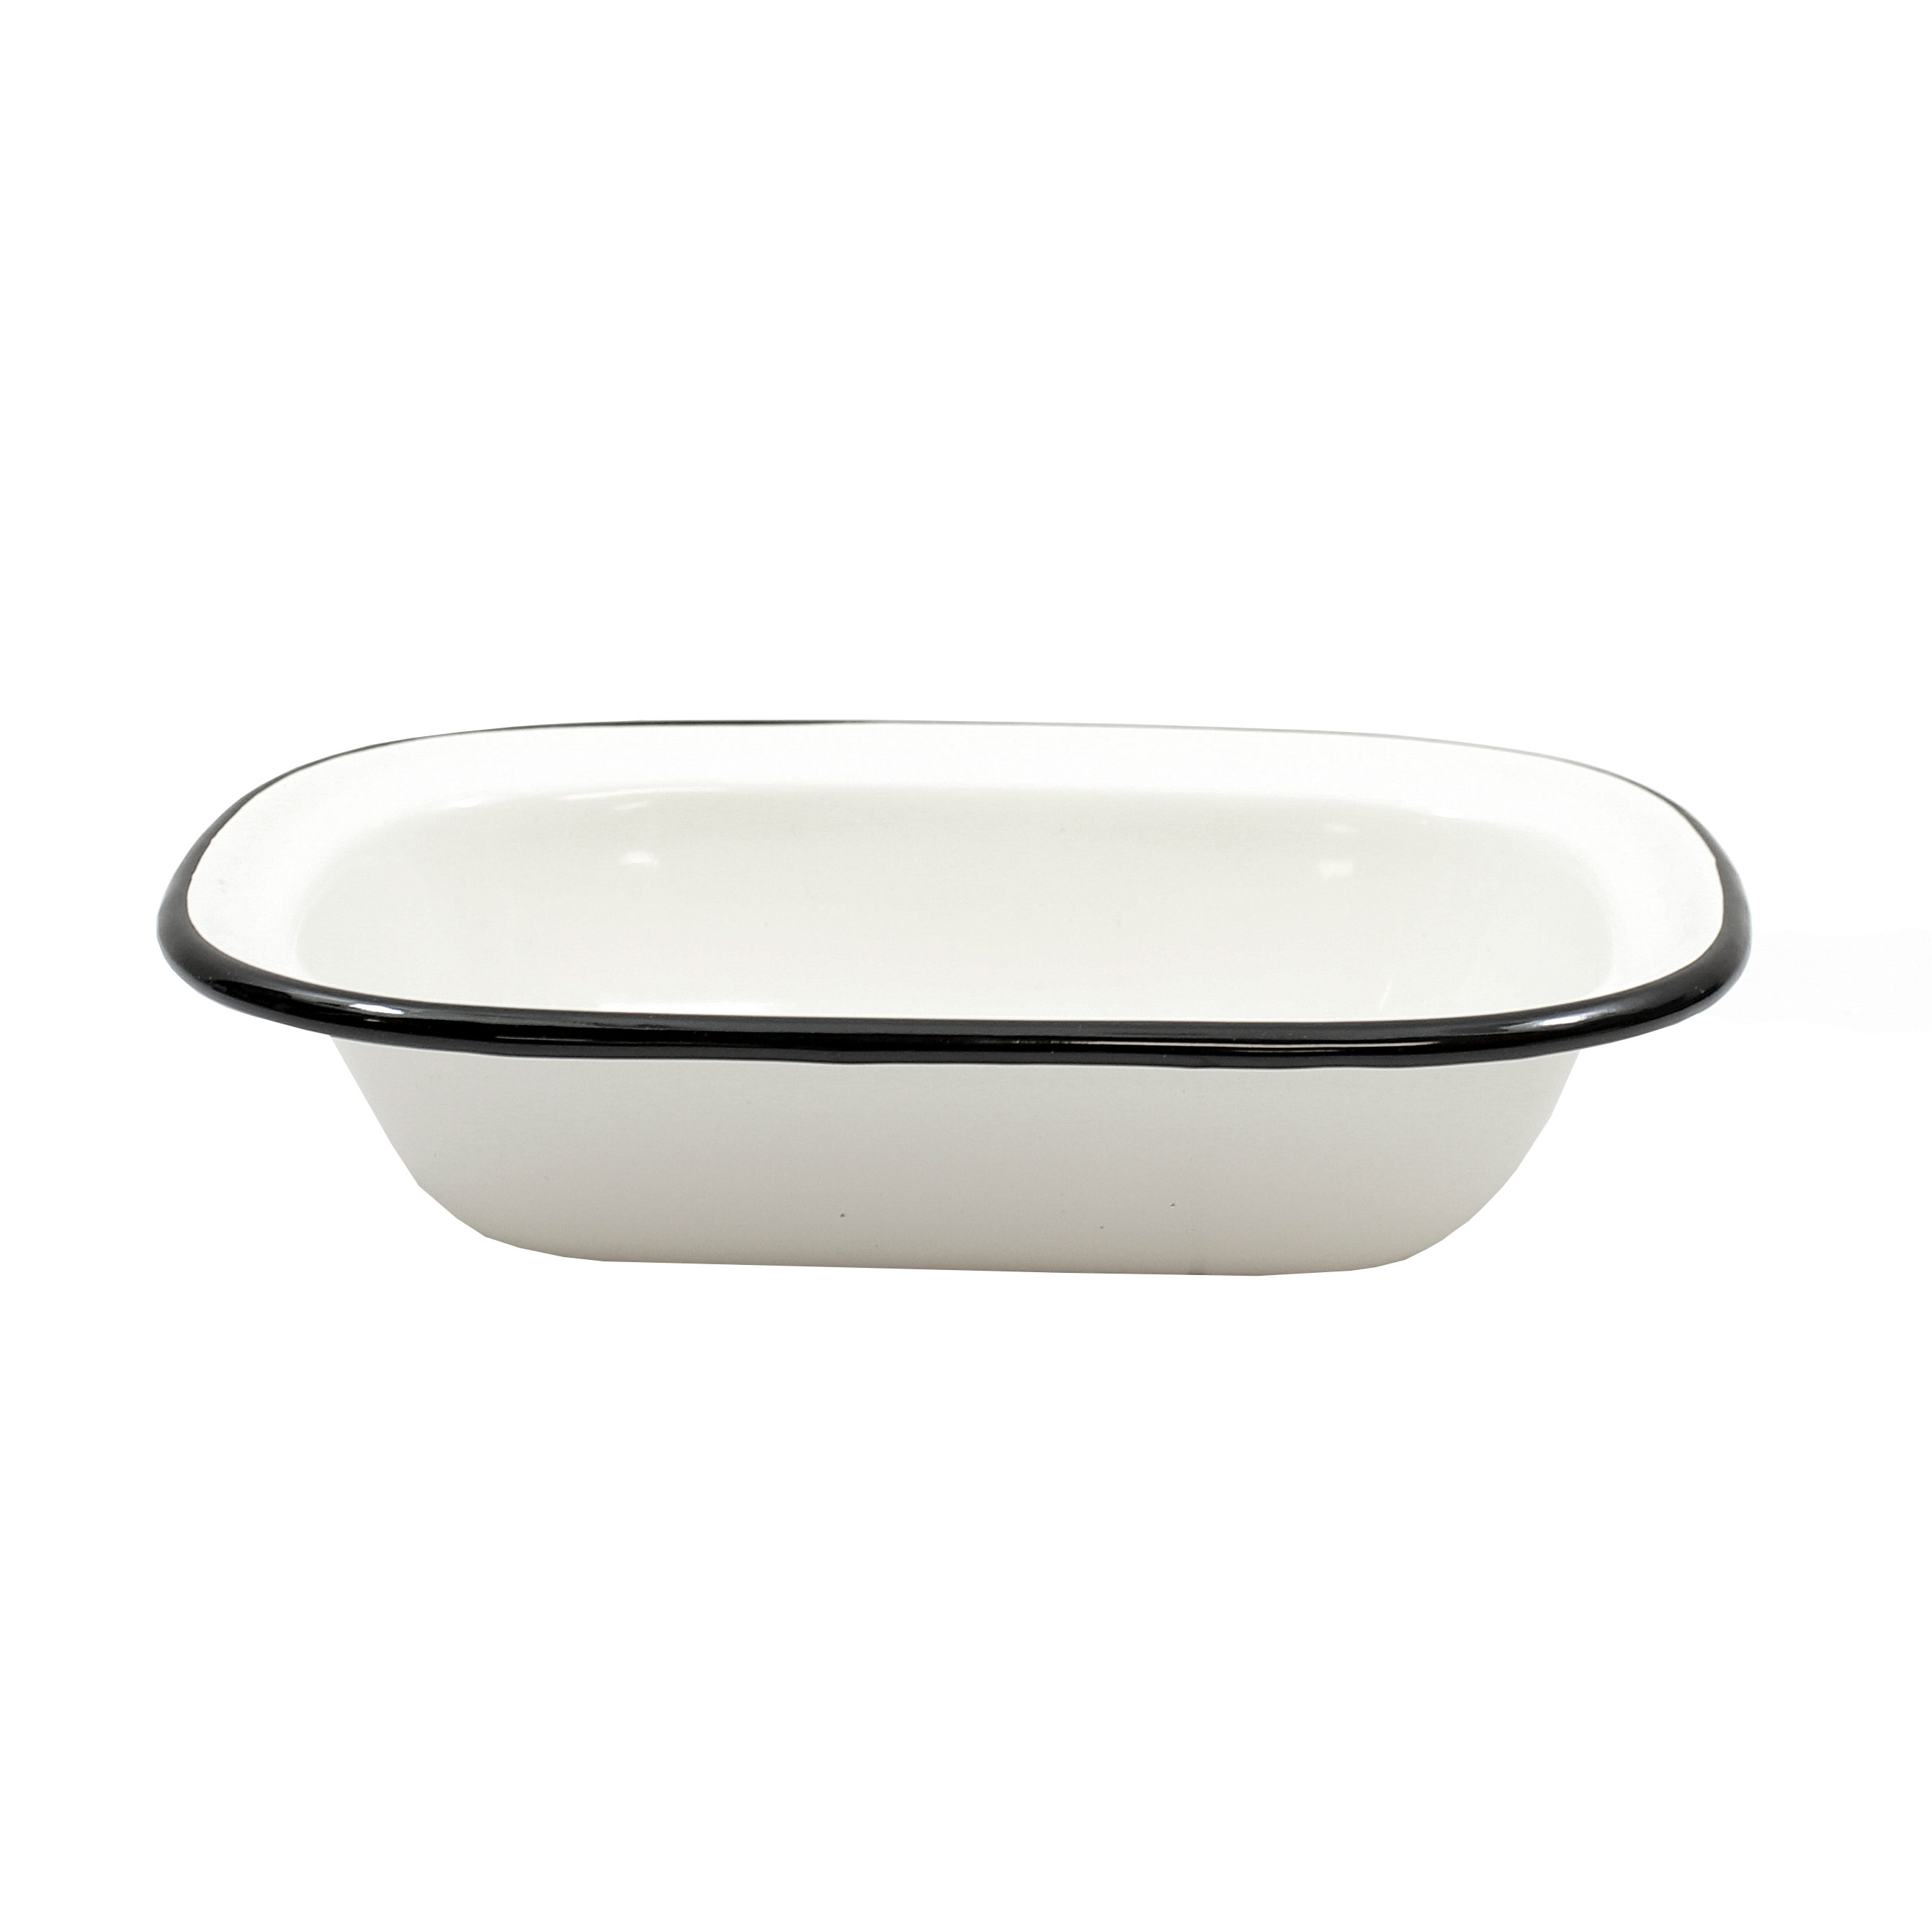 TableCraft Products 80013 serving & display tray